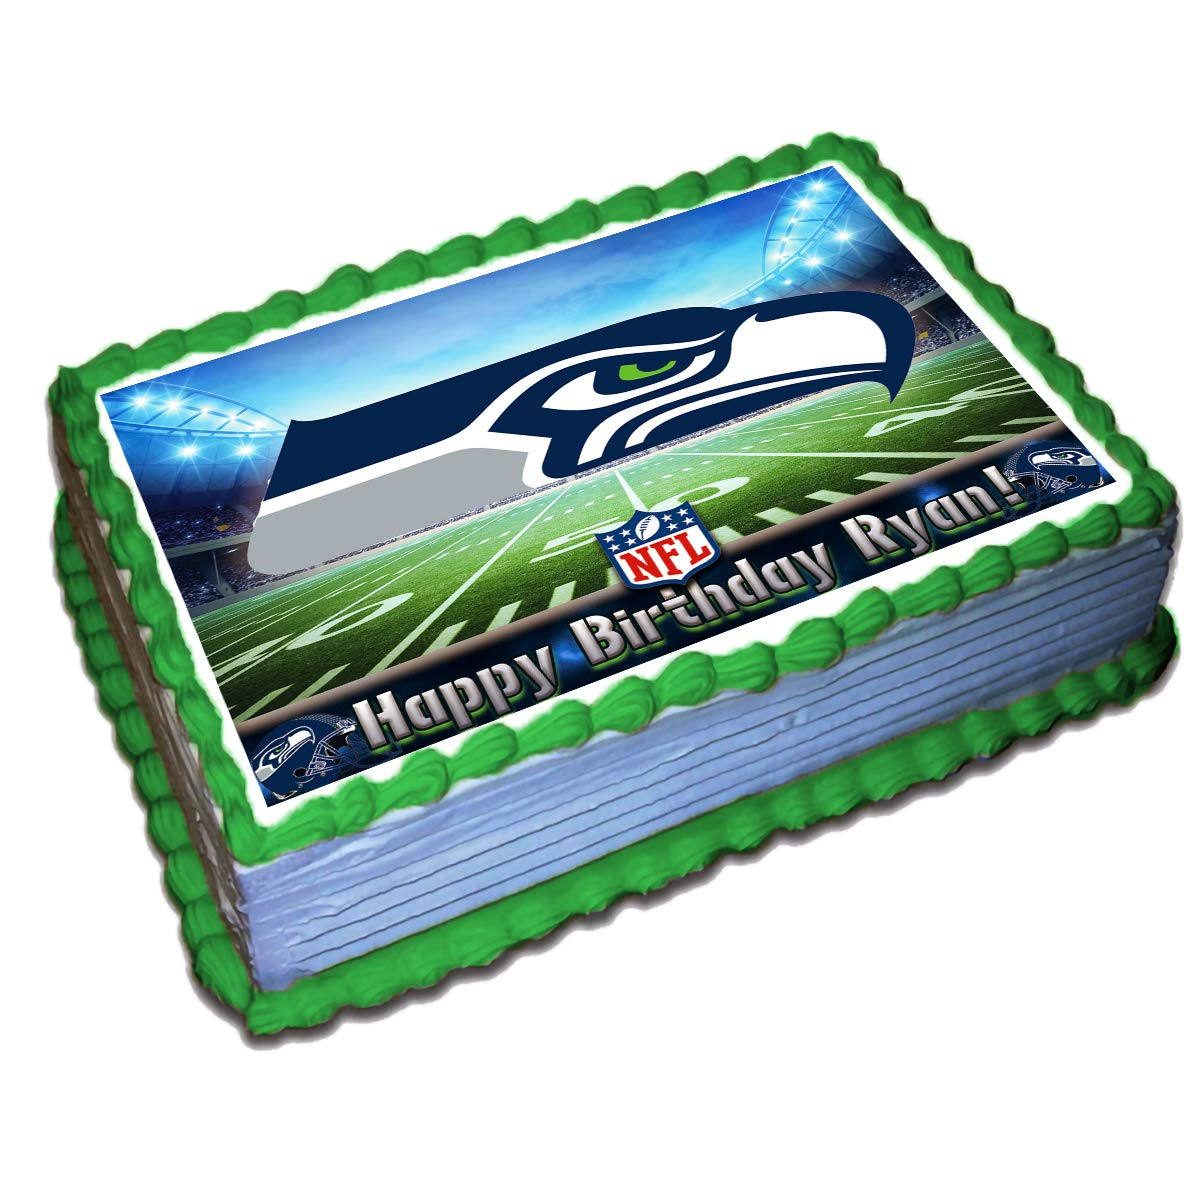 Pleasing Seattle Seahawks Nfl Personalized Cake Topper Icing Sugar Paper 1 Birthday Cards Printable Opercafe Filternl